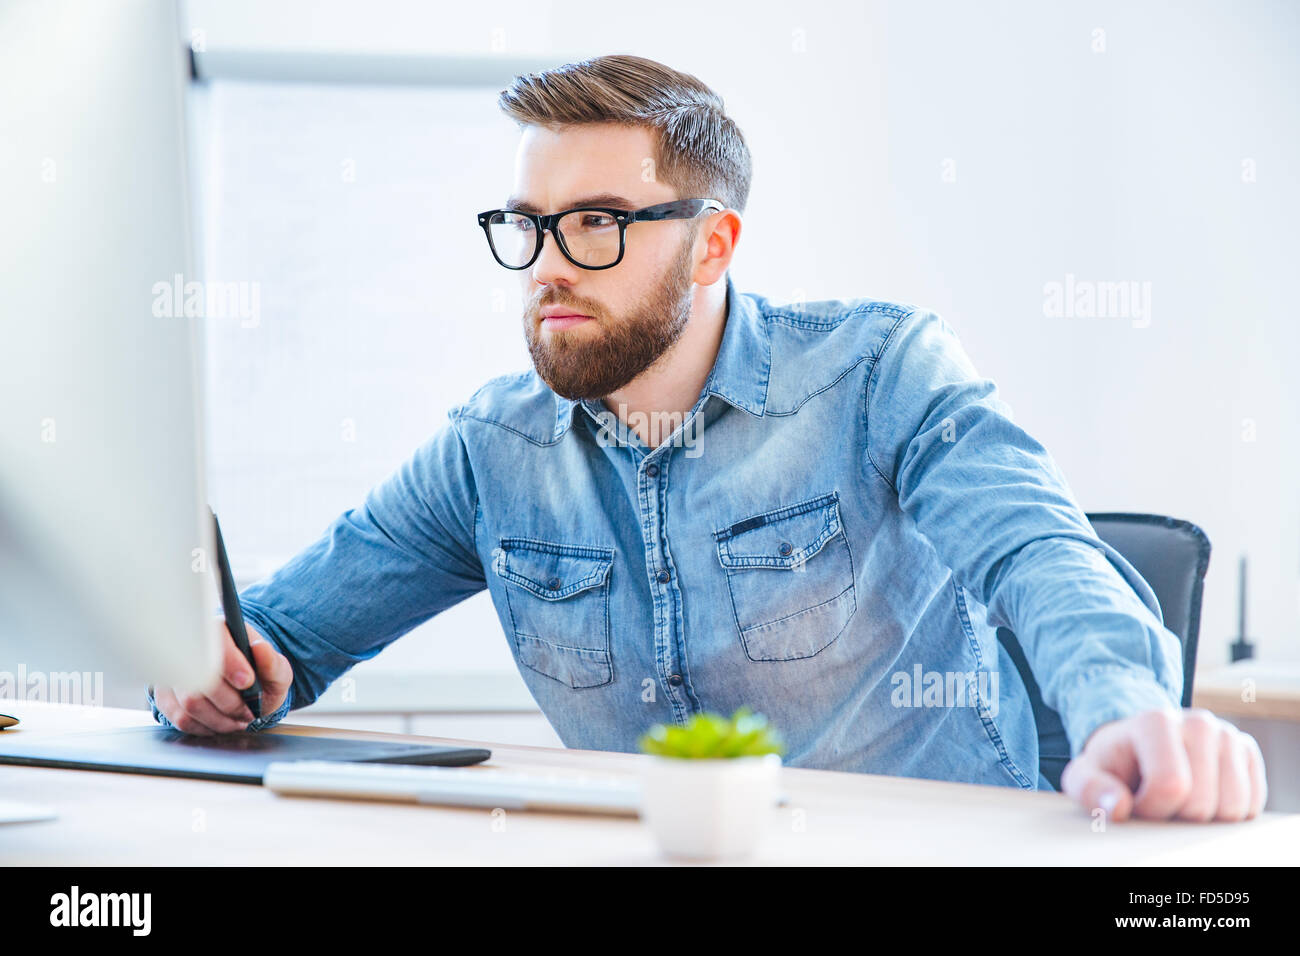 Serious concentrated young man designer drawing with graphic pen tablet using stylus in office Stock Photo